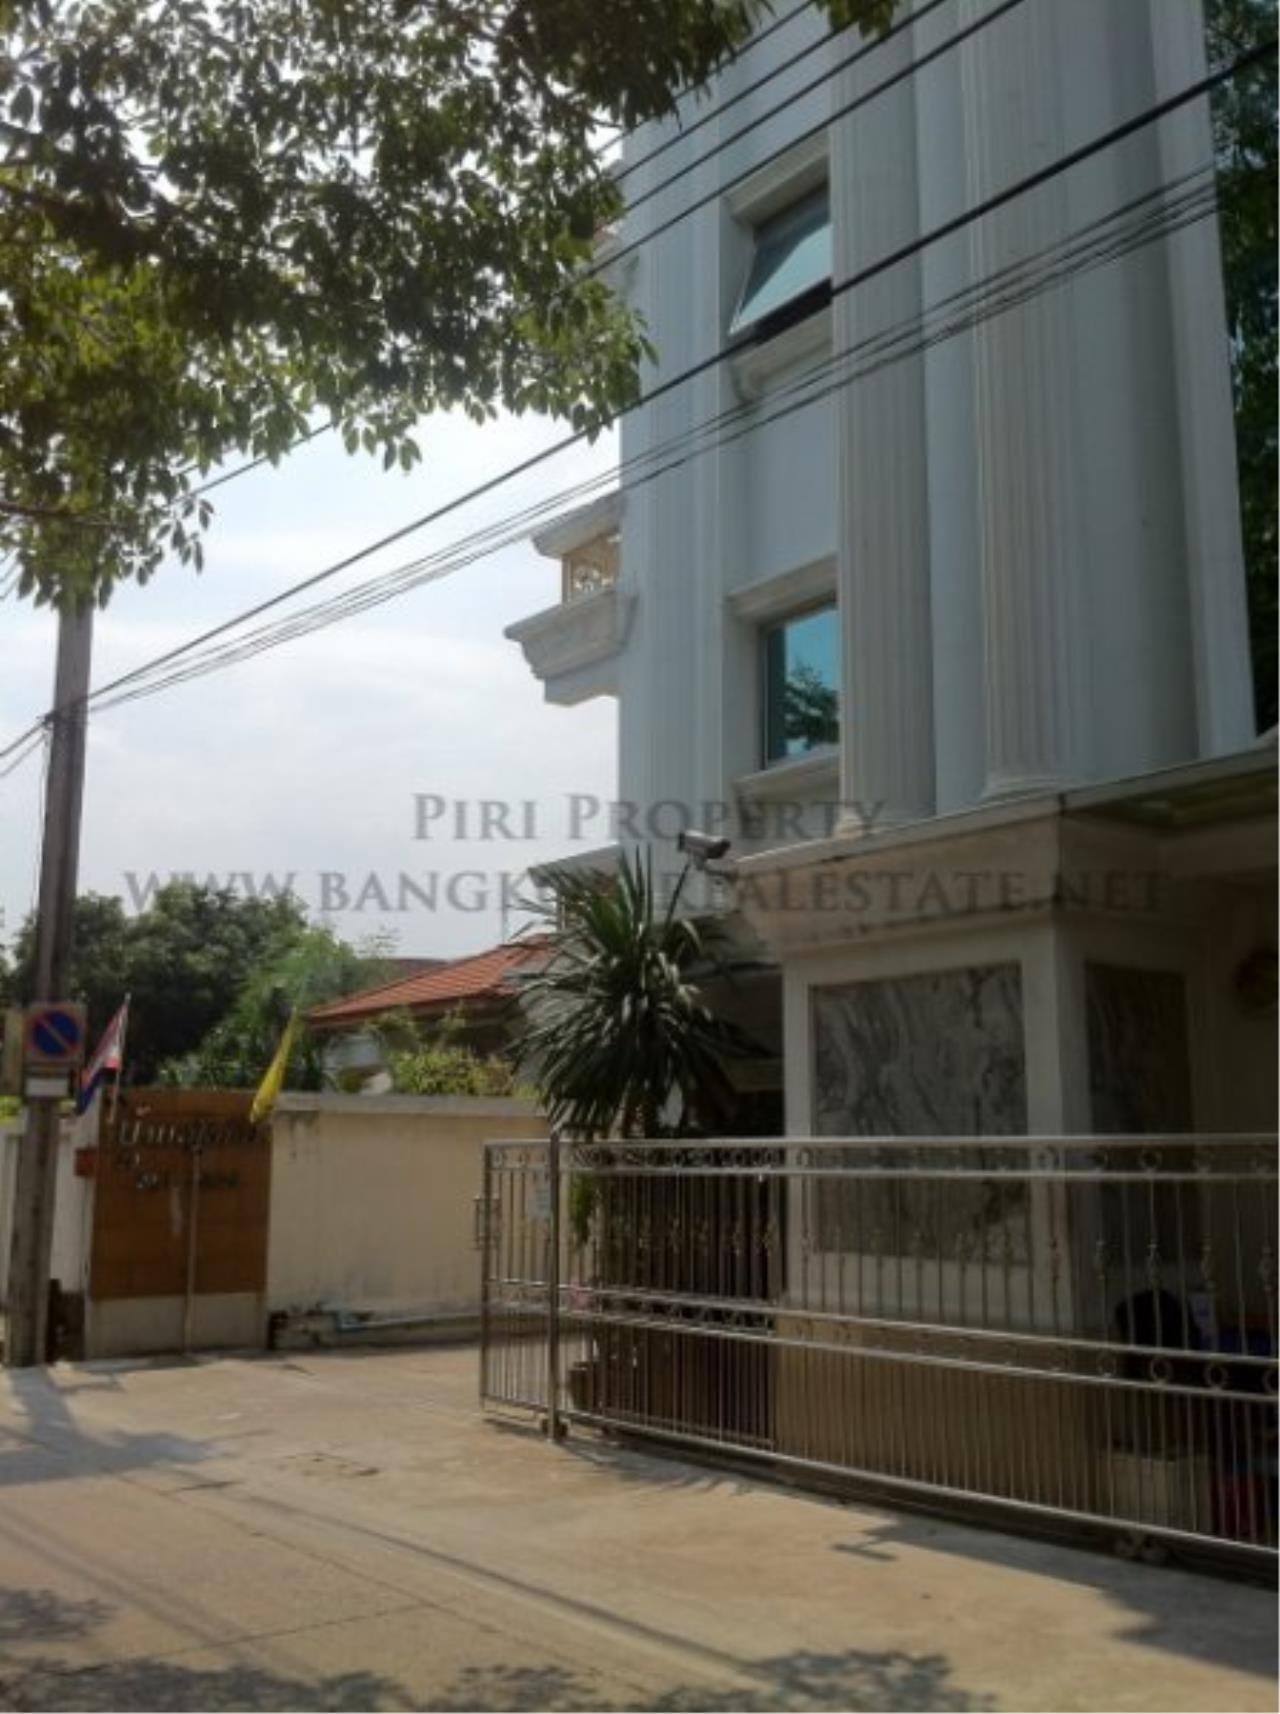 Piri Property Agency's Baan Sukhuthai - Spacious 1 Bed Condo for Rent - 65 SQM 4